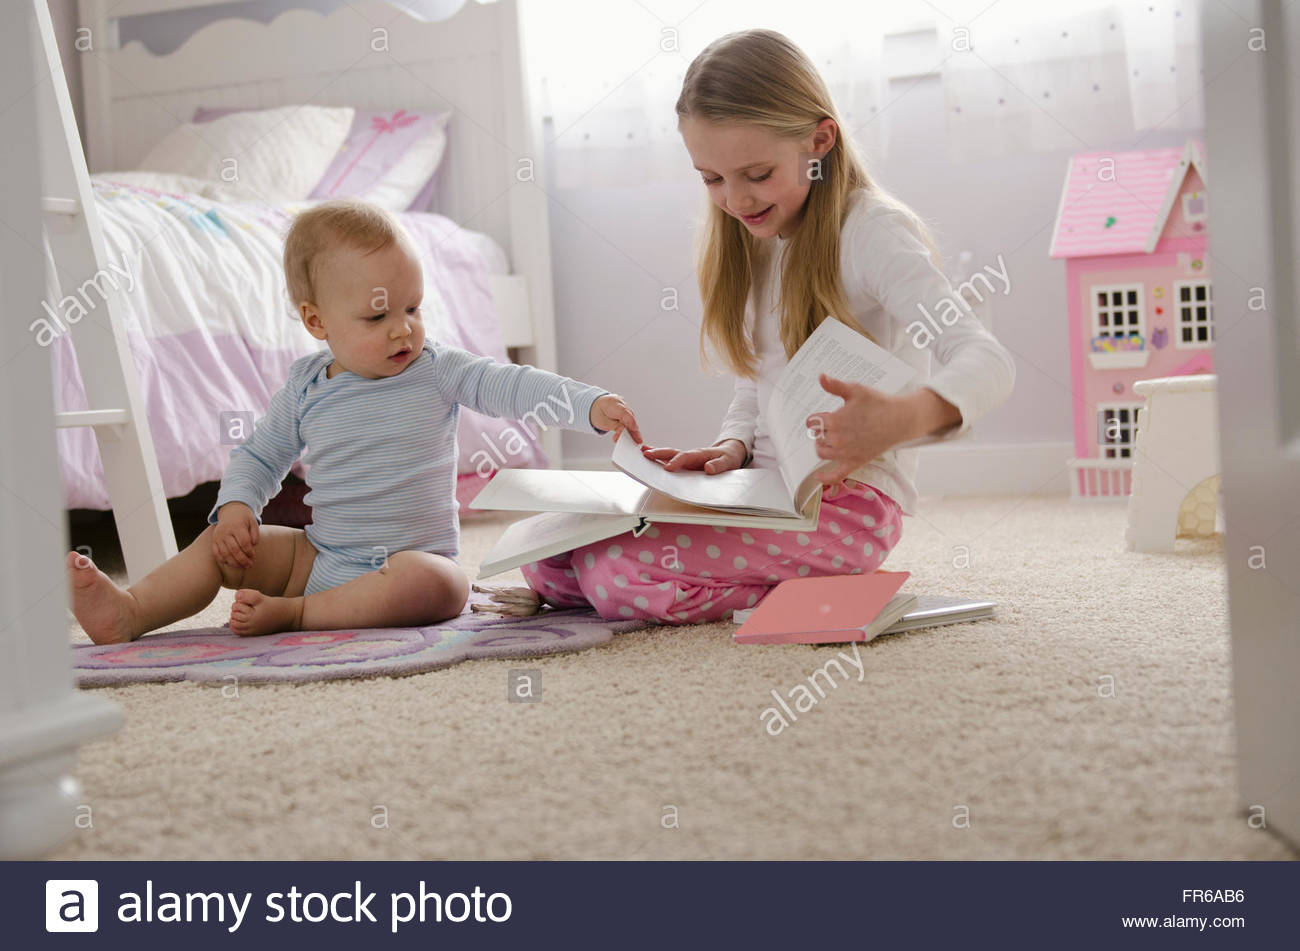 sister reading with younger brother in bedroom - Stock Image